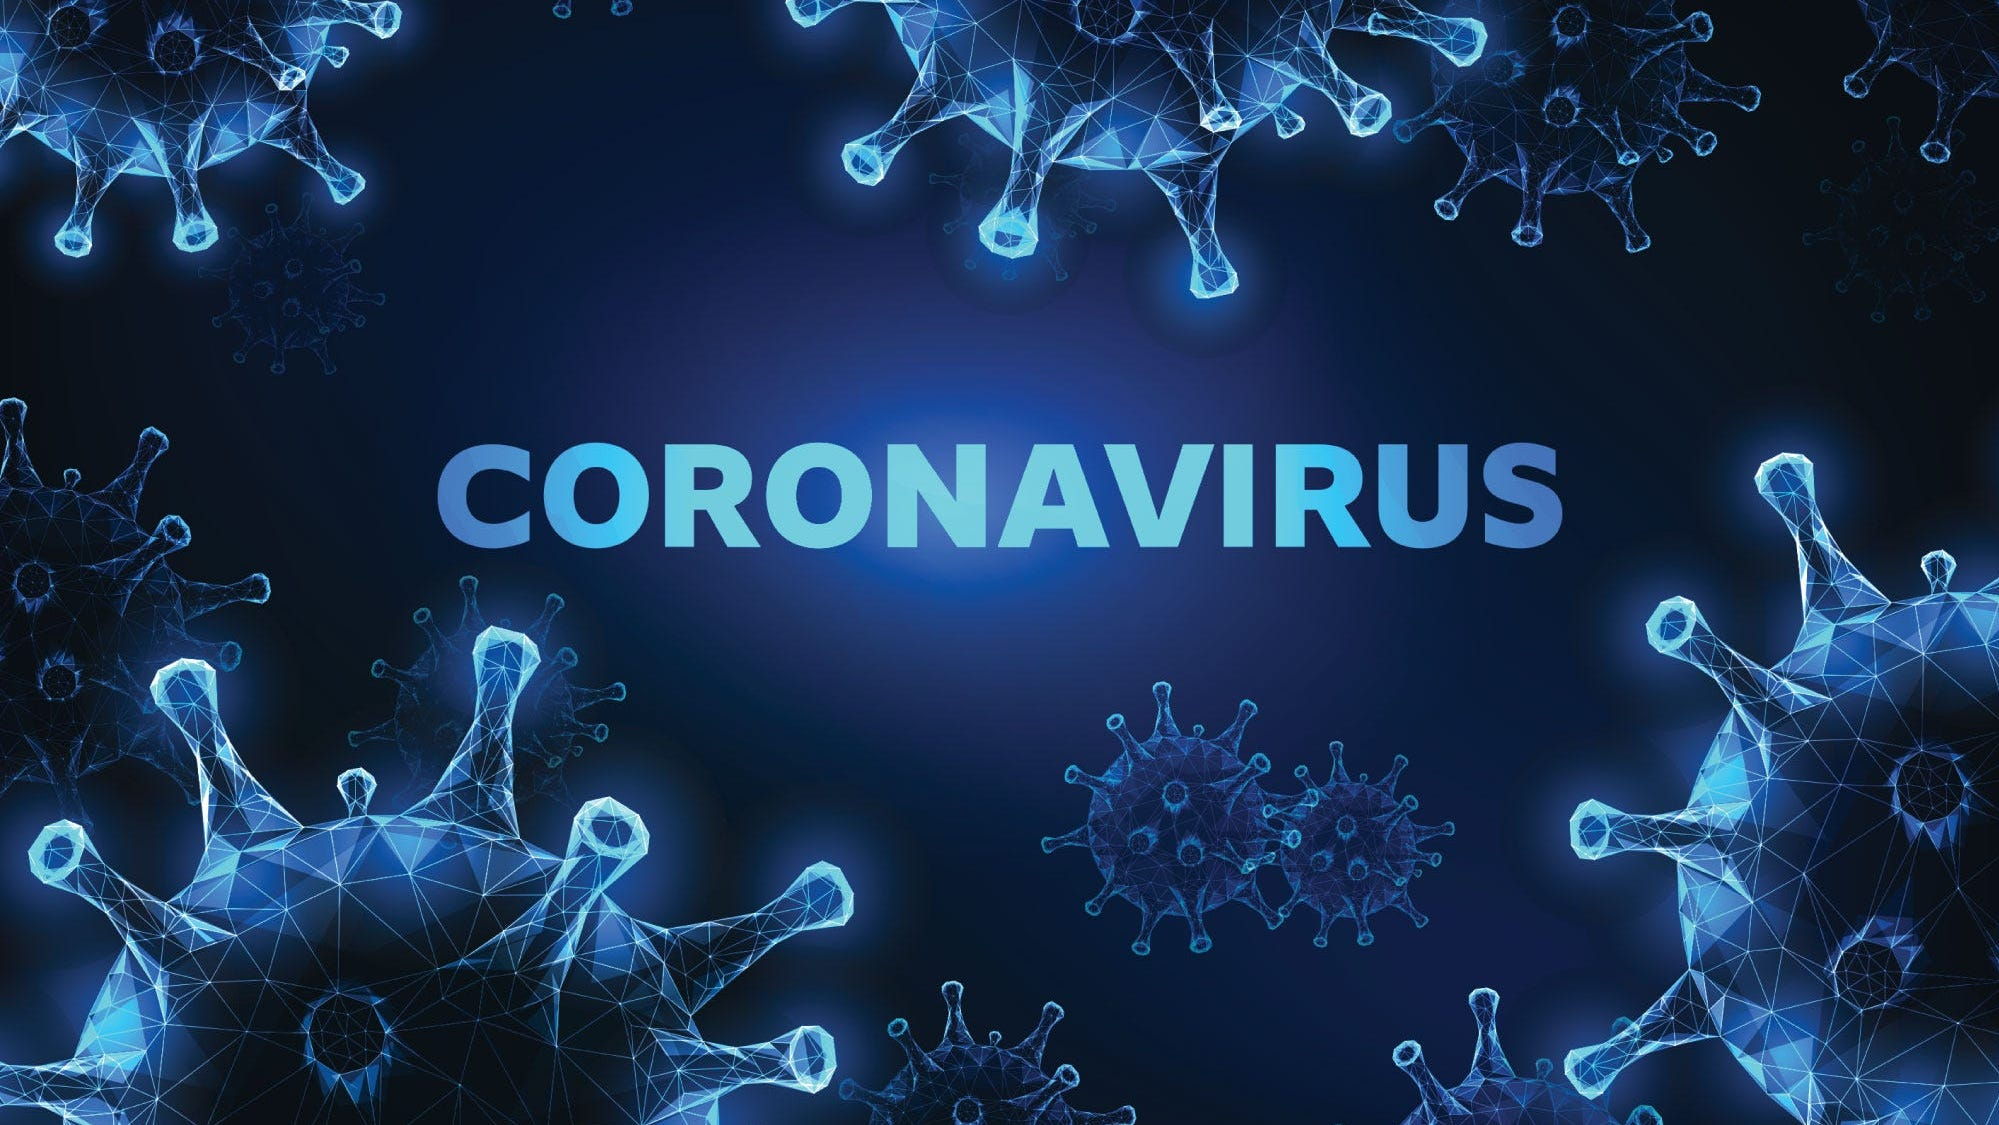 Coronavirus: Tippecanoe posts second largest daily gain, with 32; 125 cases in past week - Journal & Courier